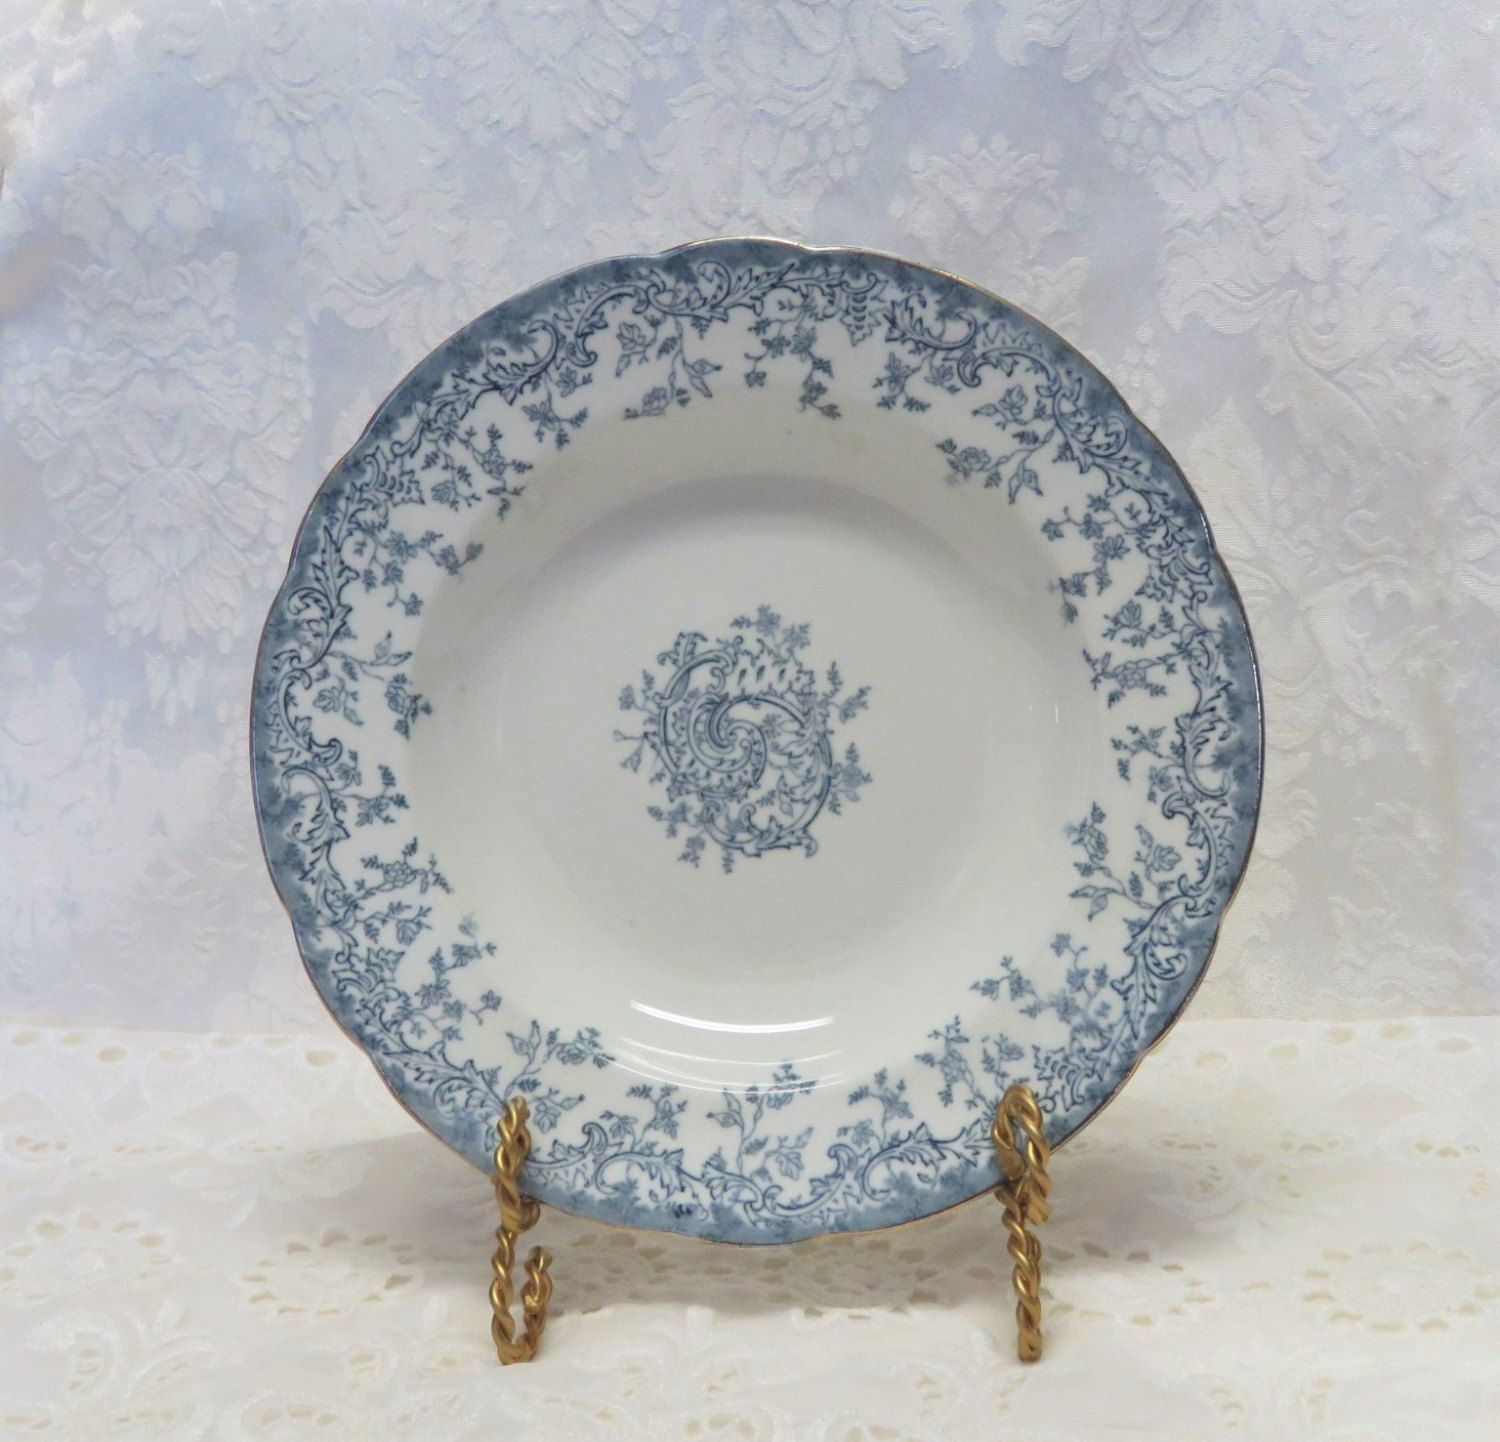 Antique French Blue Transferware Soup Bowls/ 19th Century China/ Bordeaux/ Blue and White Dishes/ Ironstone/ Set of 11  sc 1 st  Pinterest & Antique French Blue Transferware Soup Bowls/ 19th Century China ...